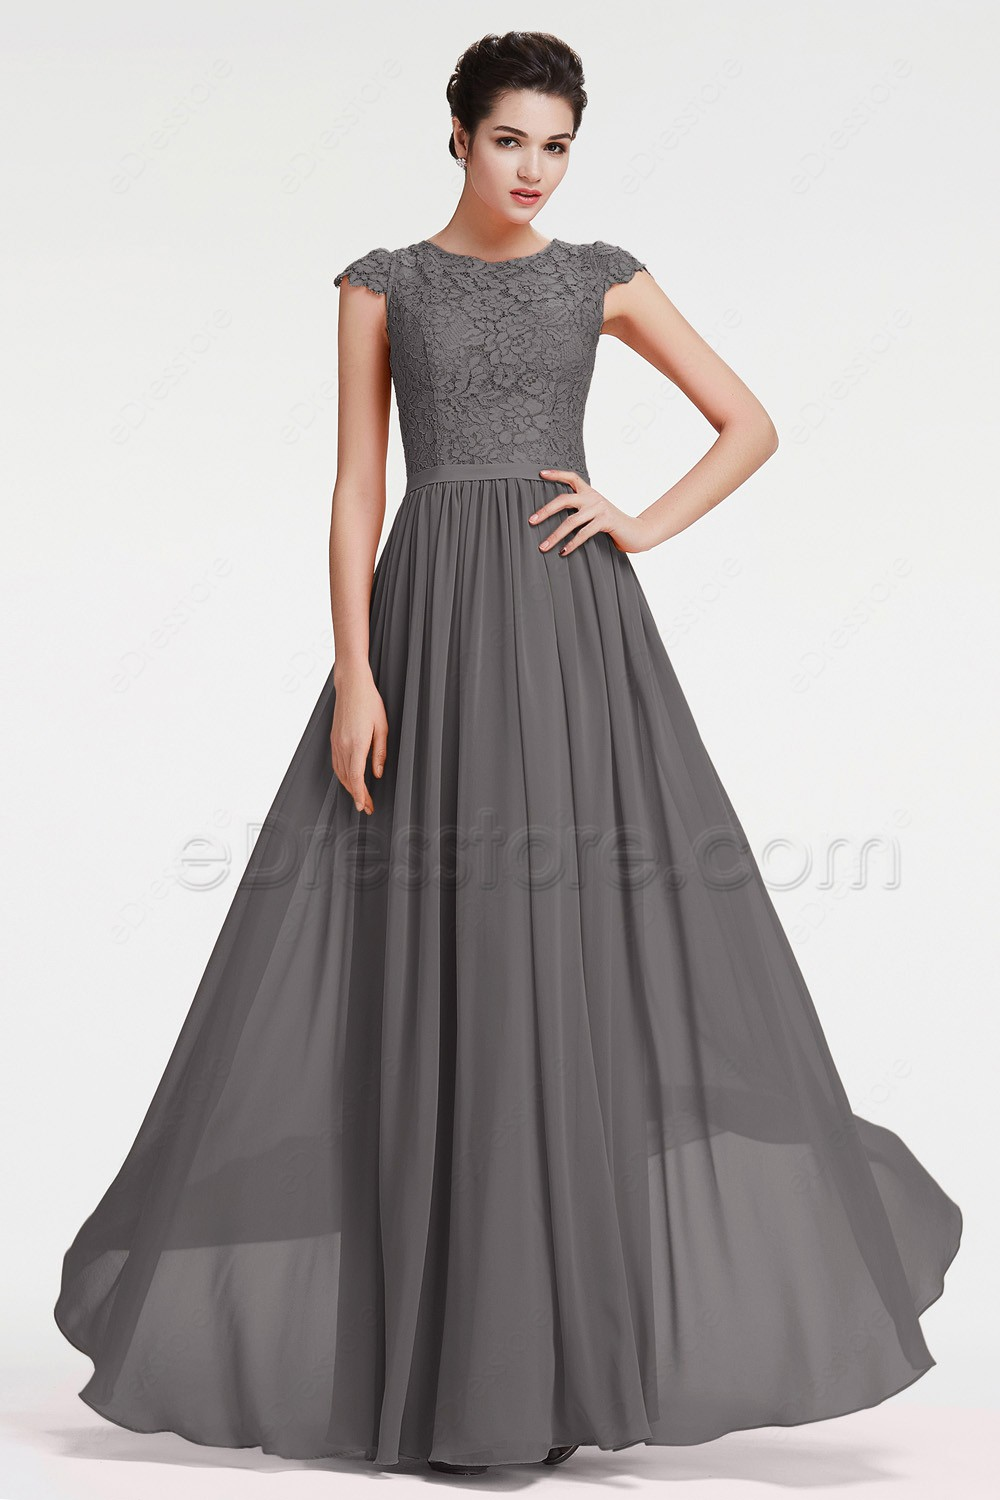 Modest charcoal grey bridesmaid dresses cap sleeves for Gray dresses to wear to a wedding